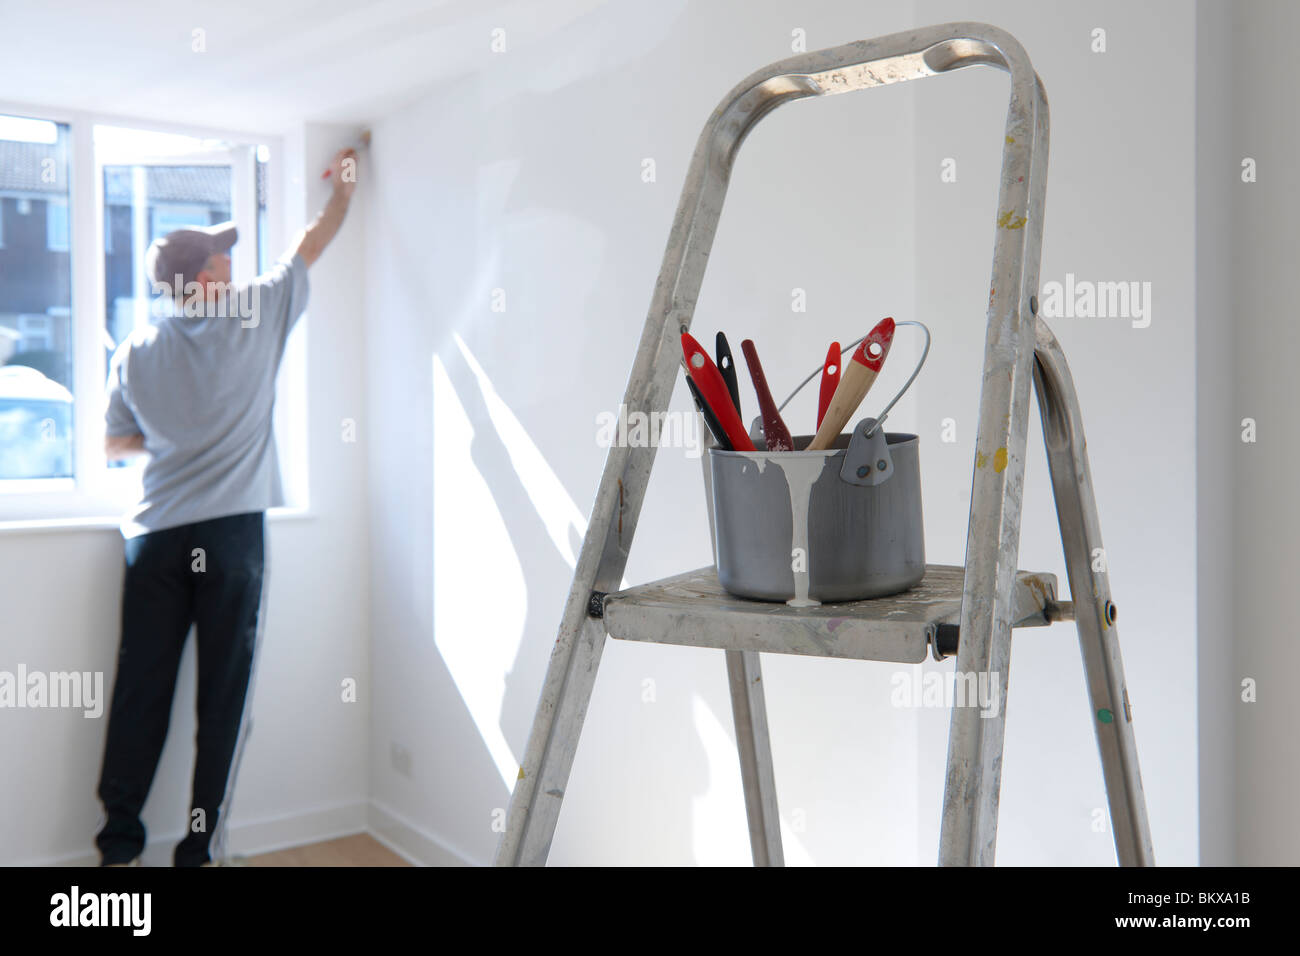 man decorating a room with ladder and paint pot in foreground - Stock Image